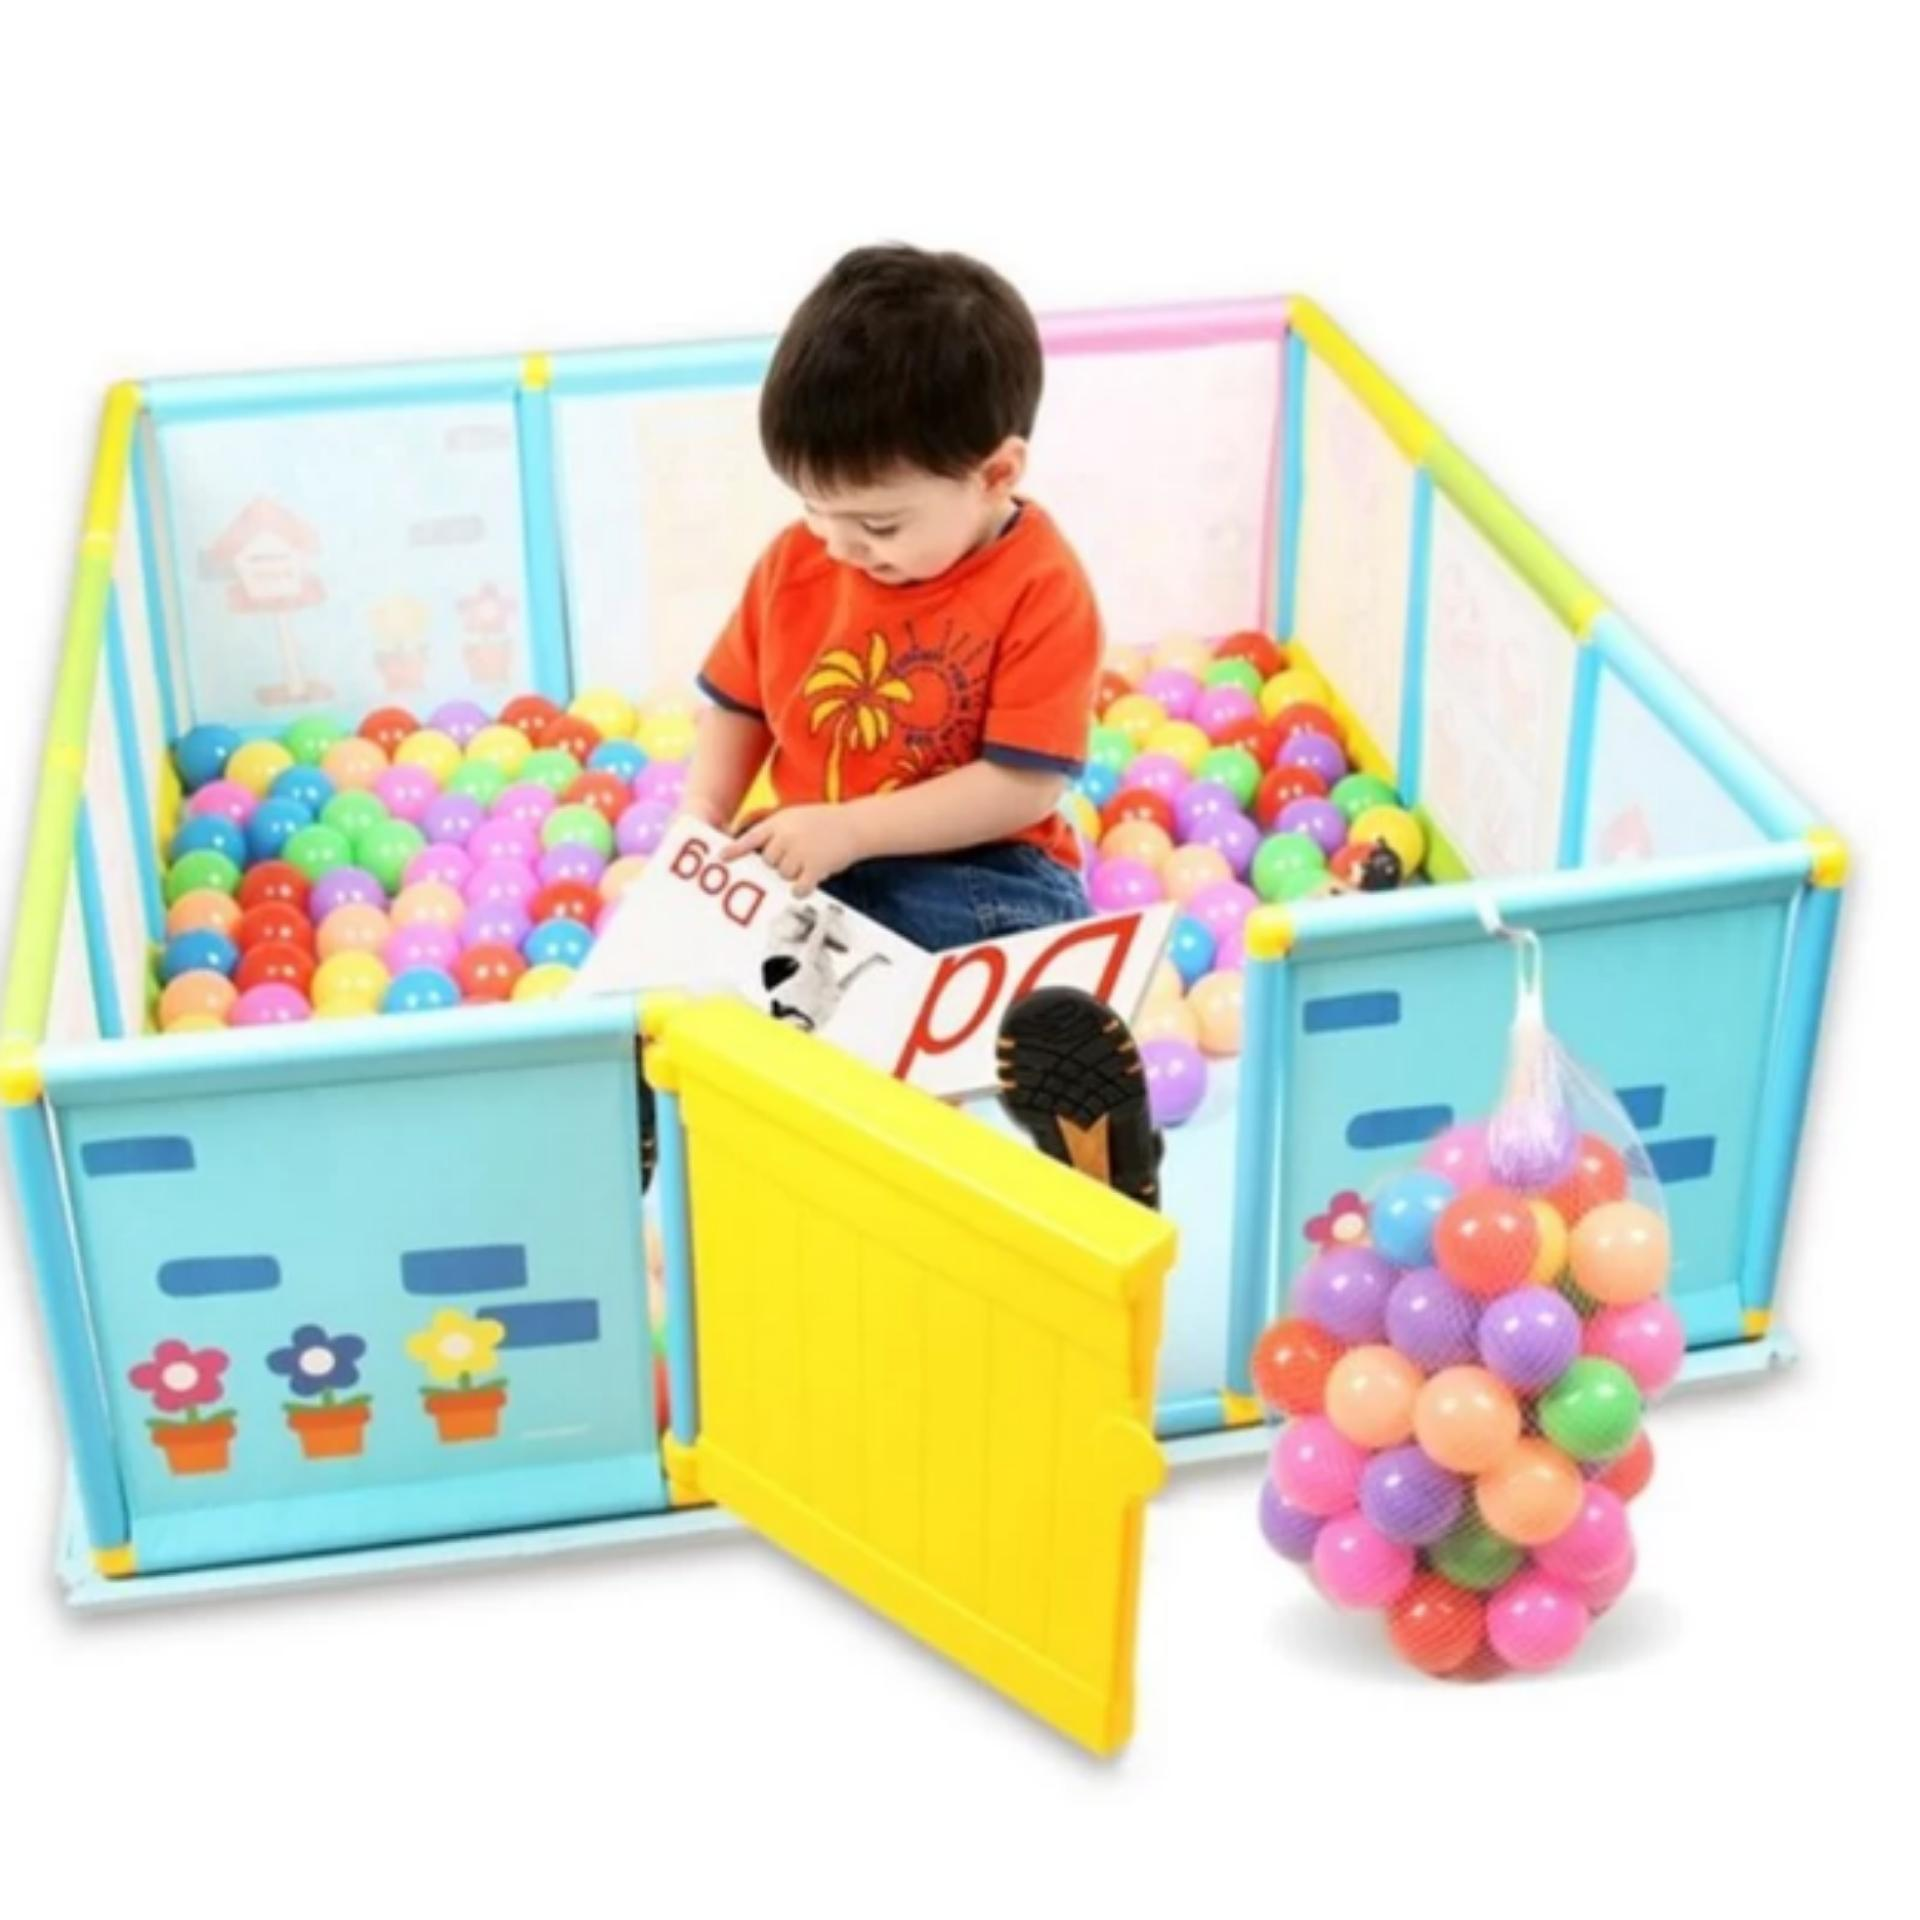 Build My House build my house play gym (play and decorate) | lazada ph